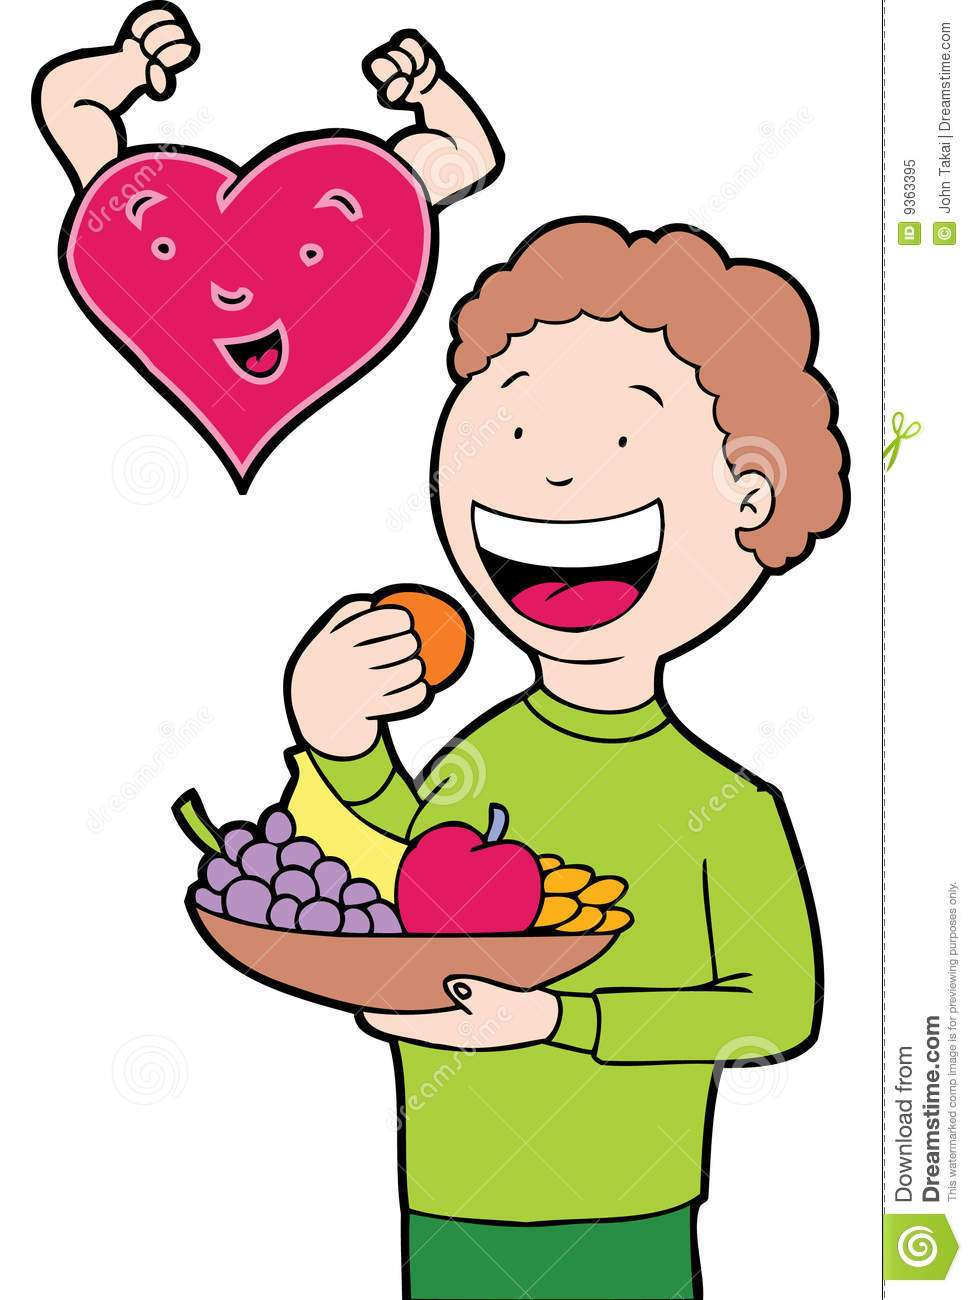 Children eating healthy clipart 4 » Clipart Portal.